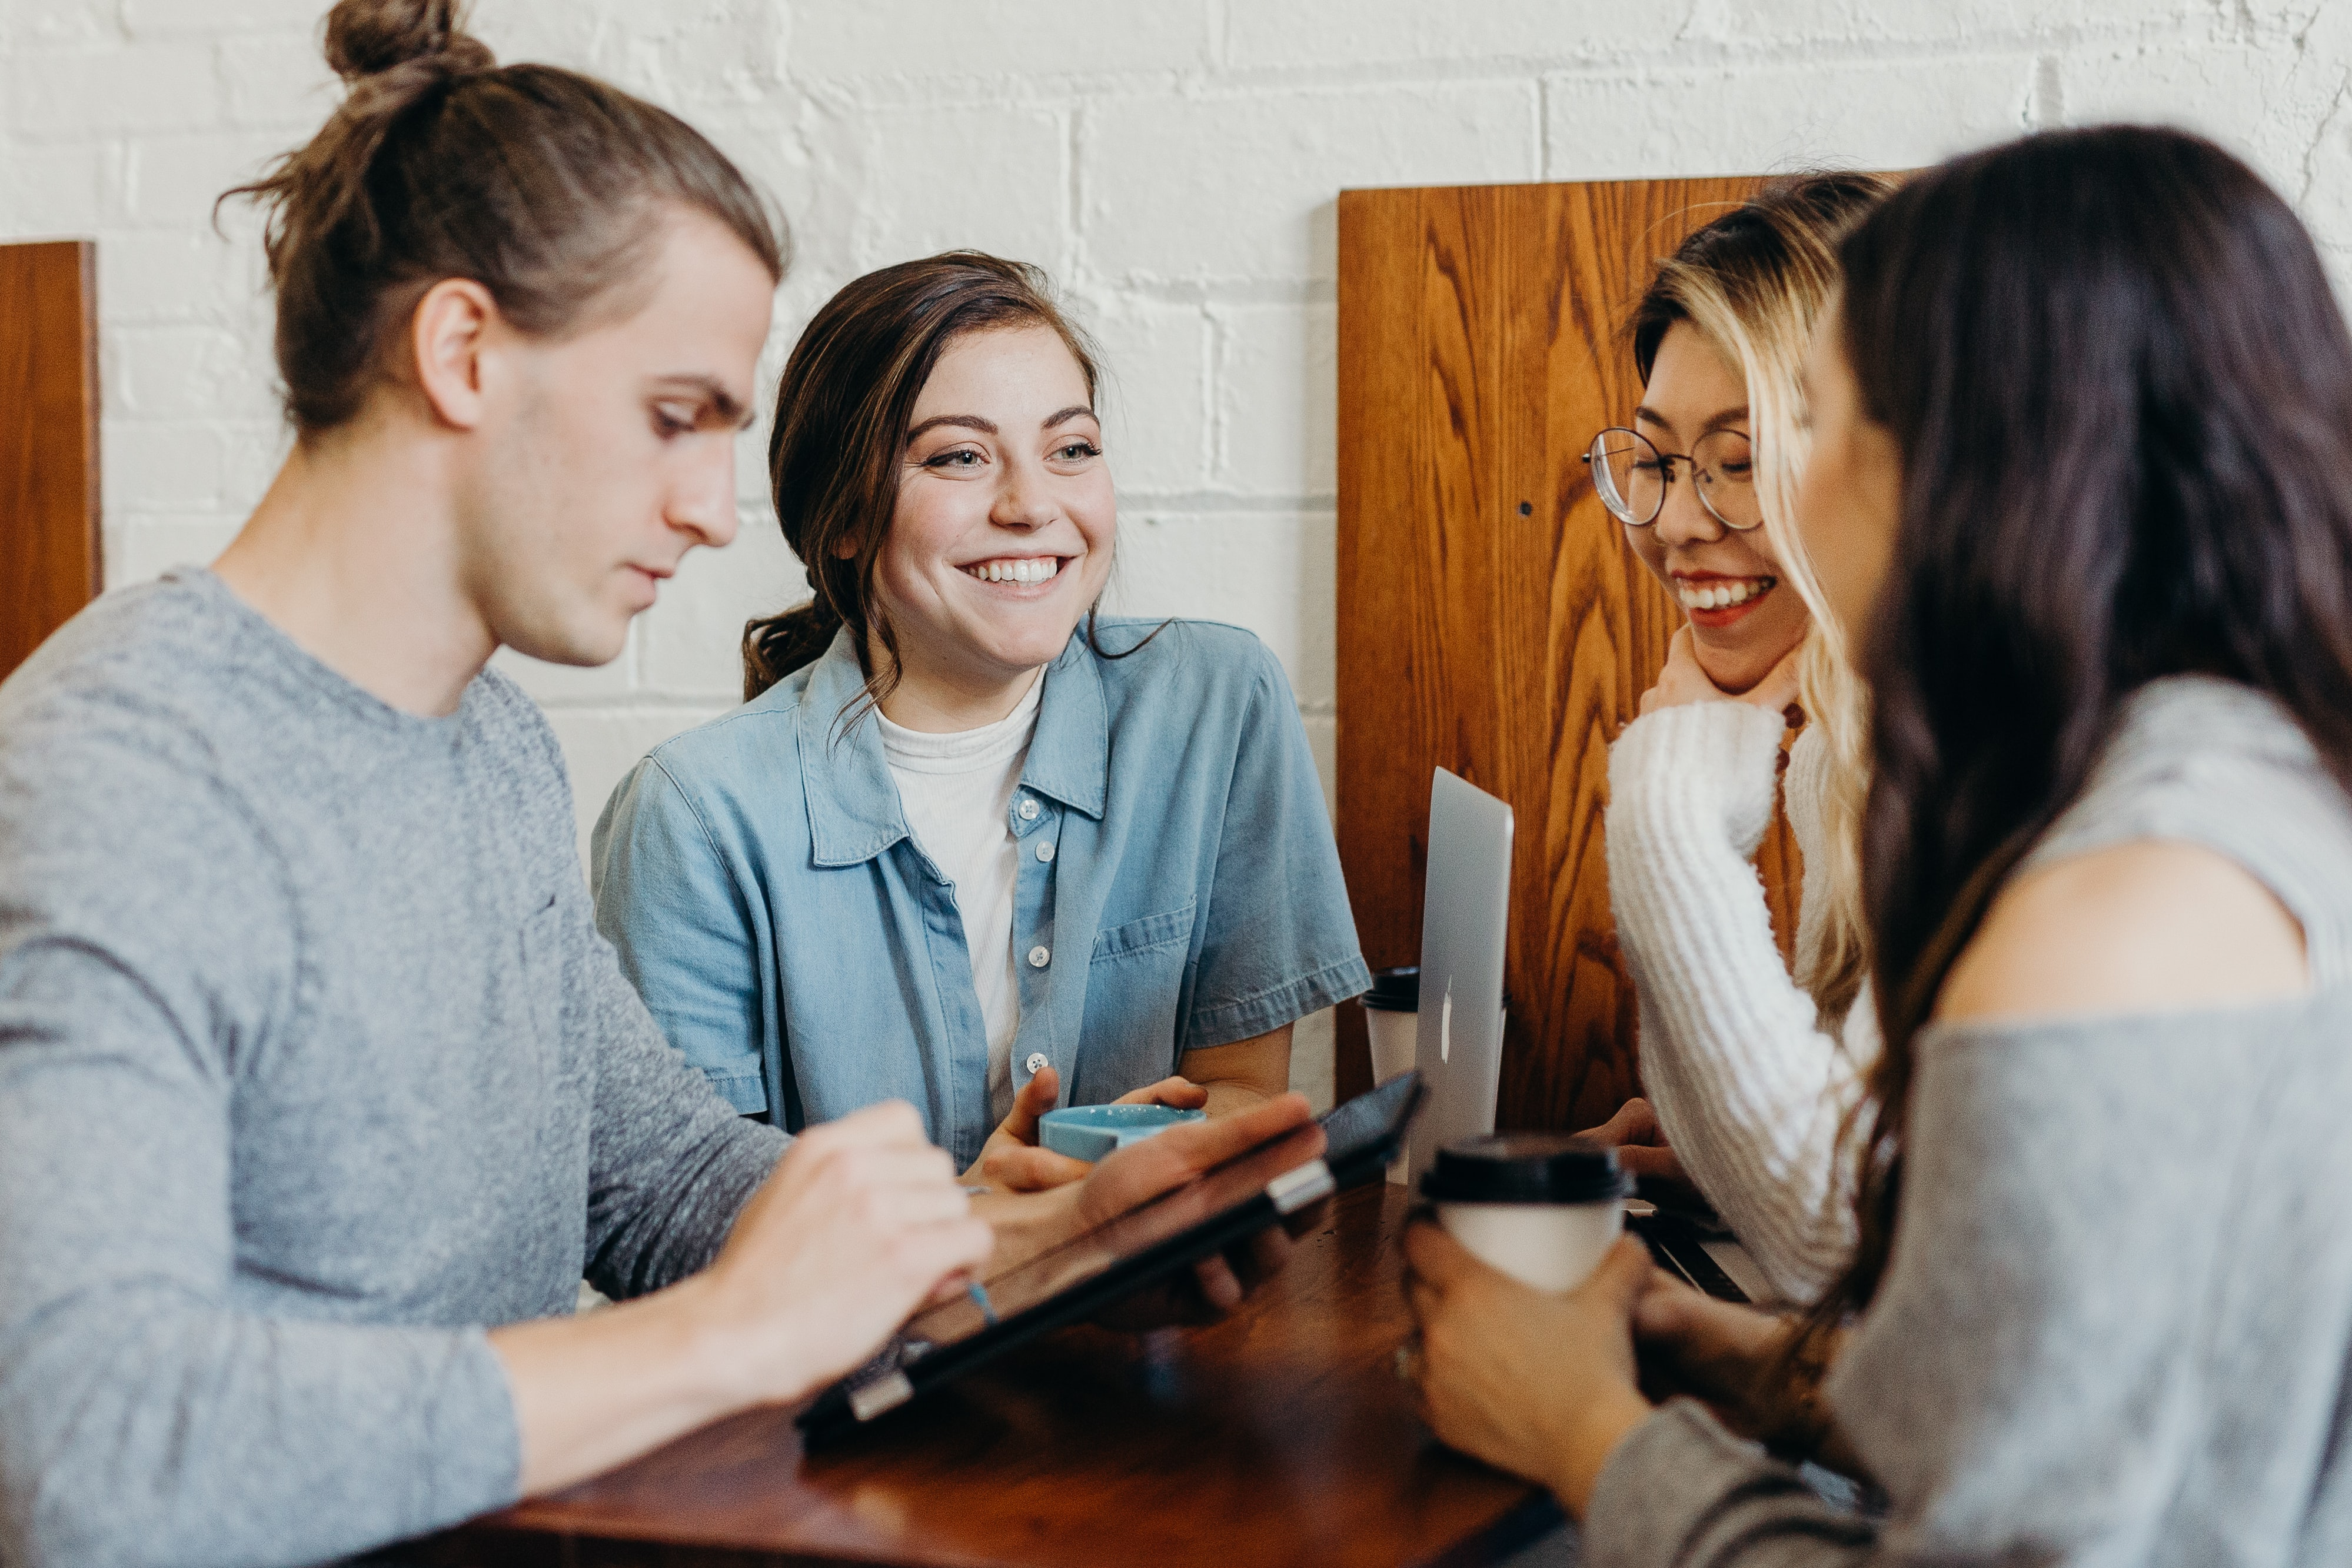 Smiling coworkers sitting together at table